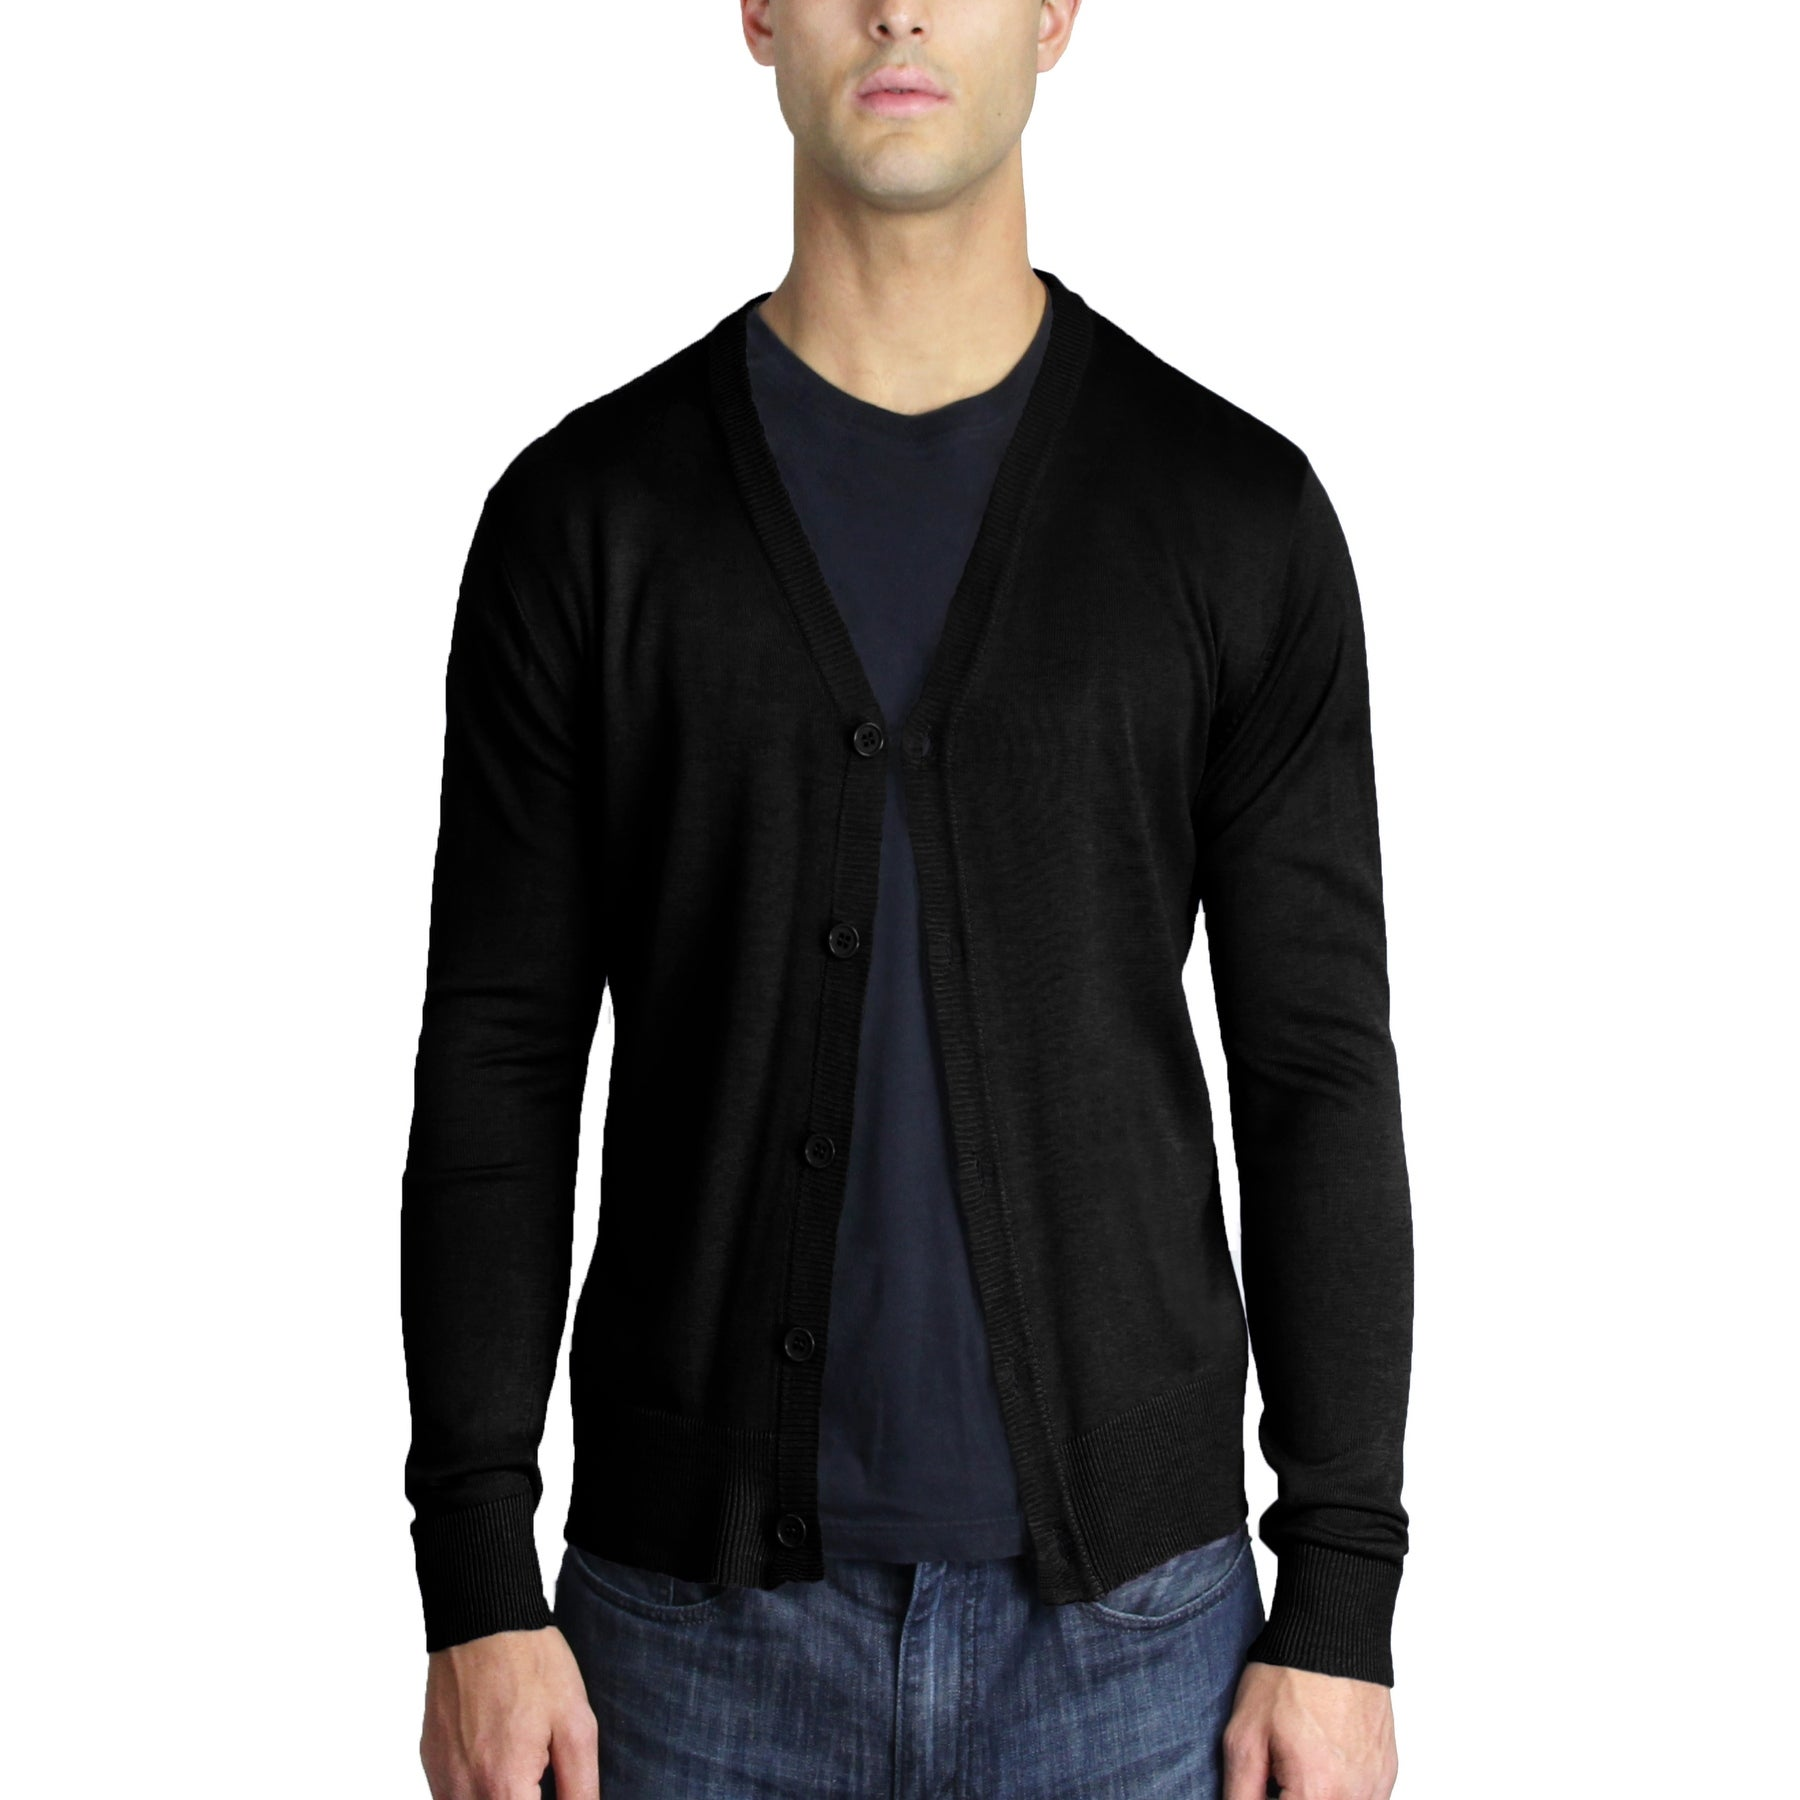 b6266f093df524 Men's Sweaters   Find Great Men's Clothing Deals Shopping at Overstock